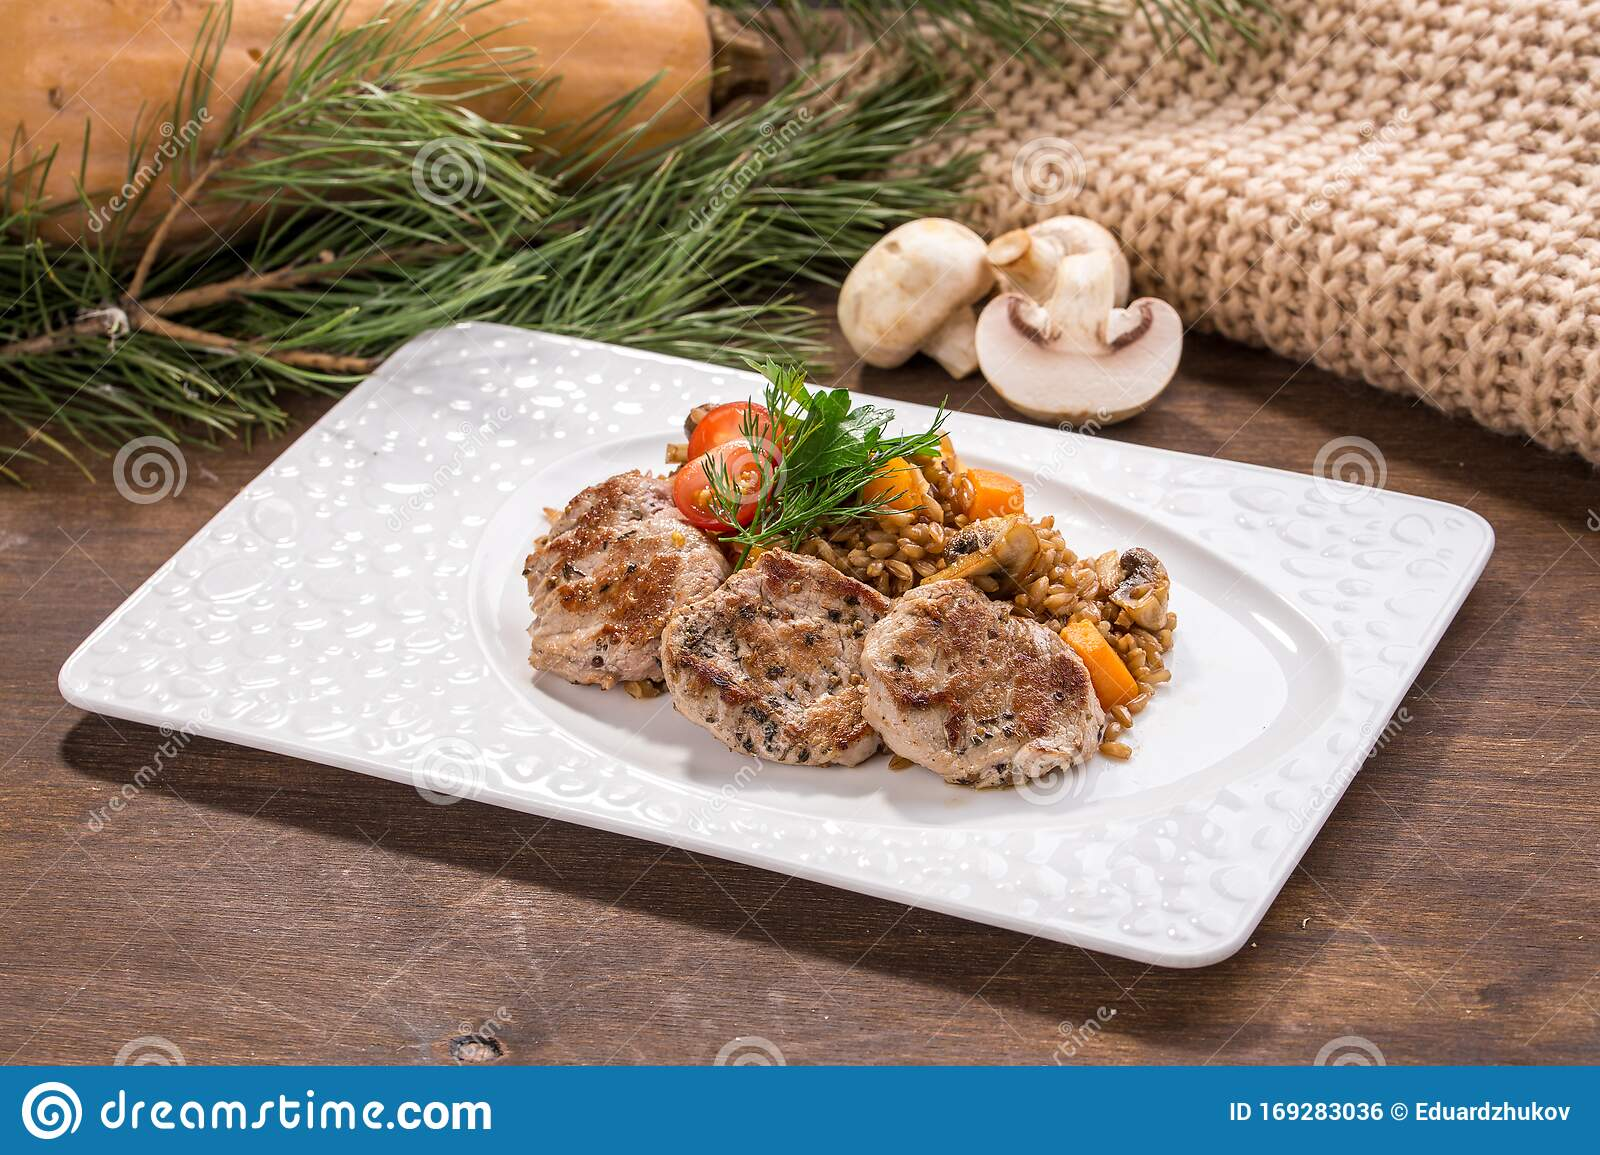 Pan Roasted Pork Tenderloin Medallions With Mushroom And Barley On Wooden Table Stock Photo Image Of Grilled Beef 169283036